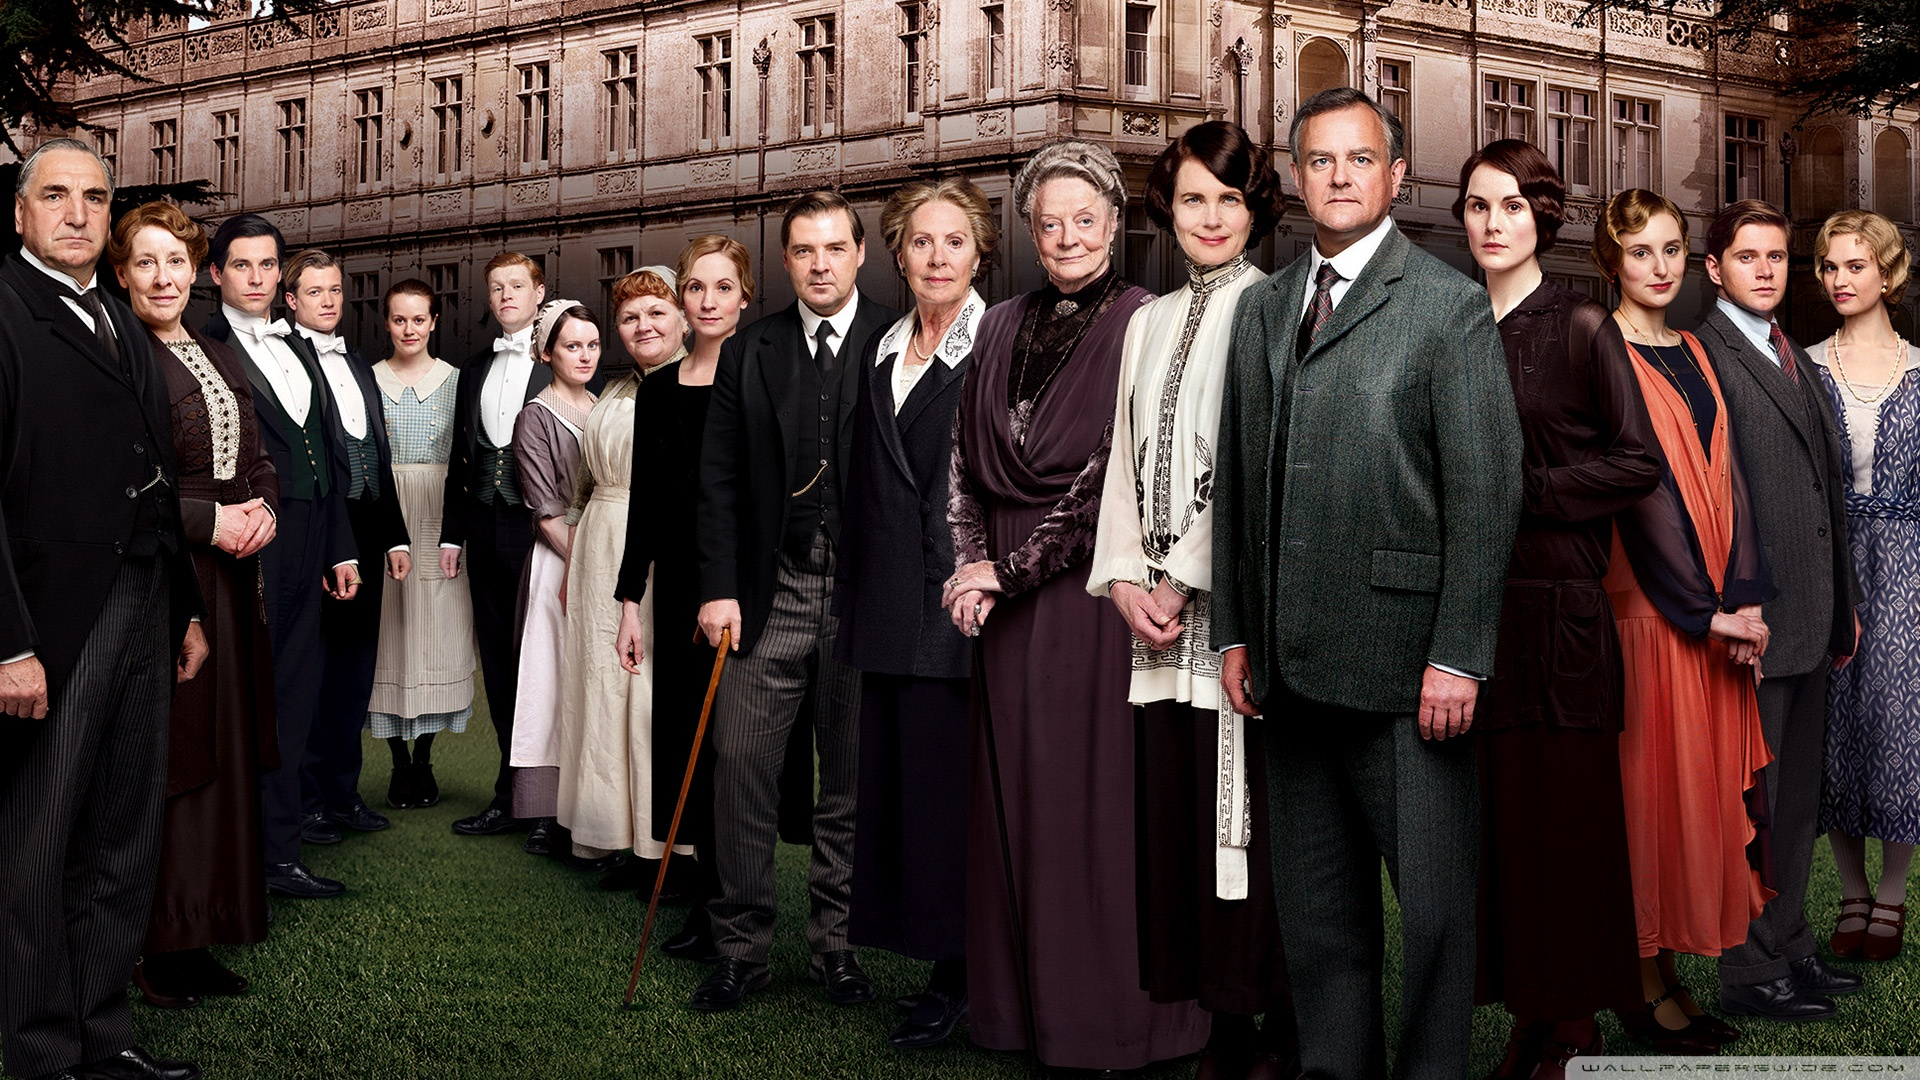 Downton Abbey Wallpapers and Background Images   stmednet 1920x1080